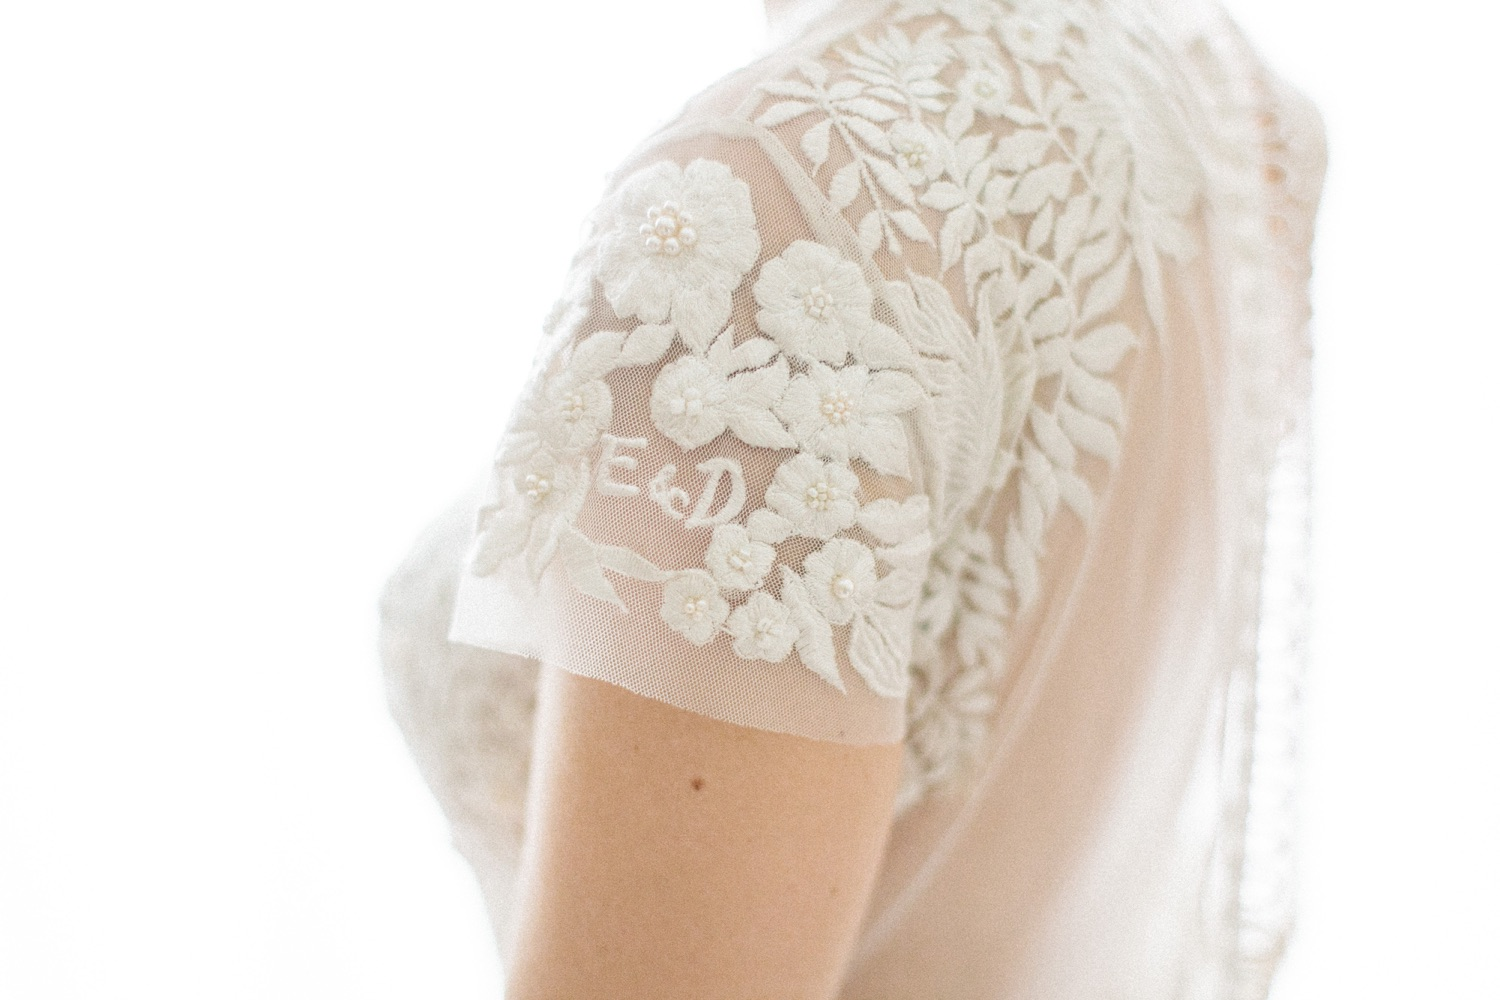 Emma HdeP Bridal Wedding Dress 3